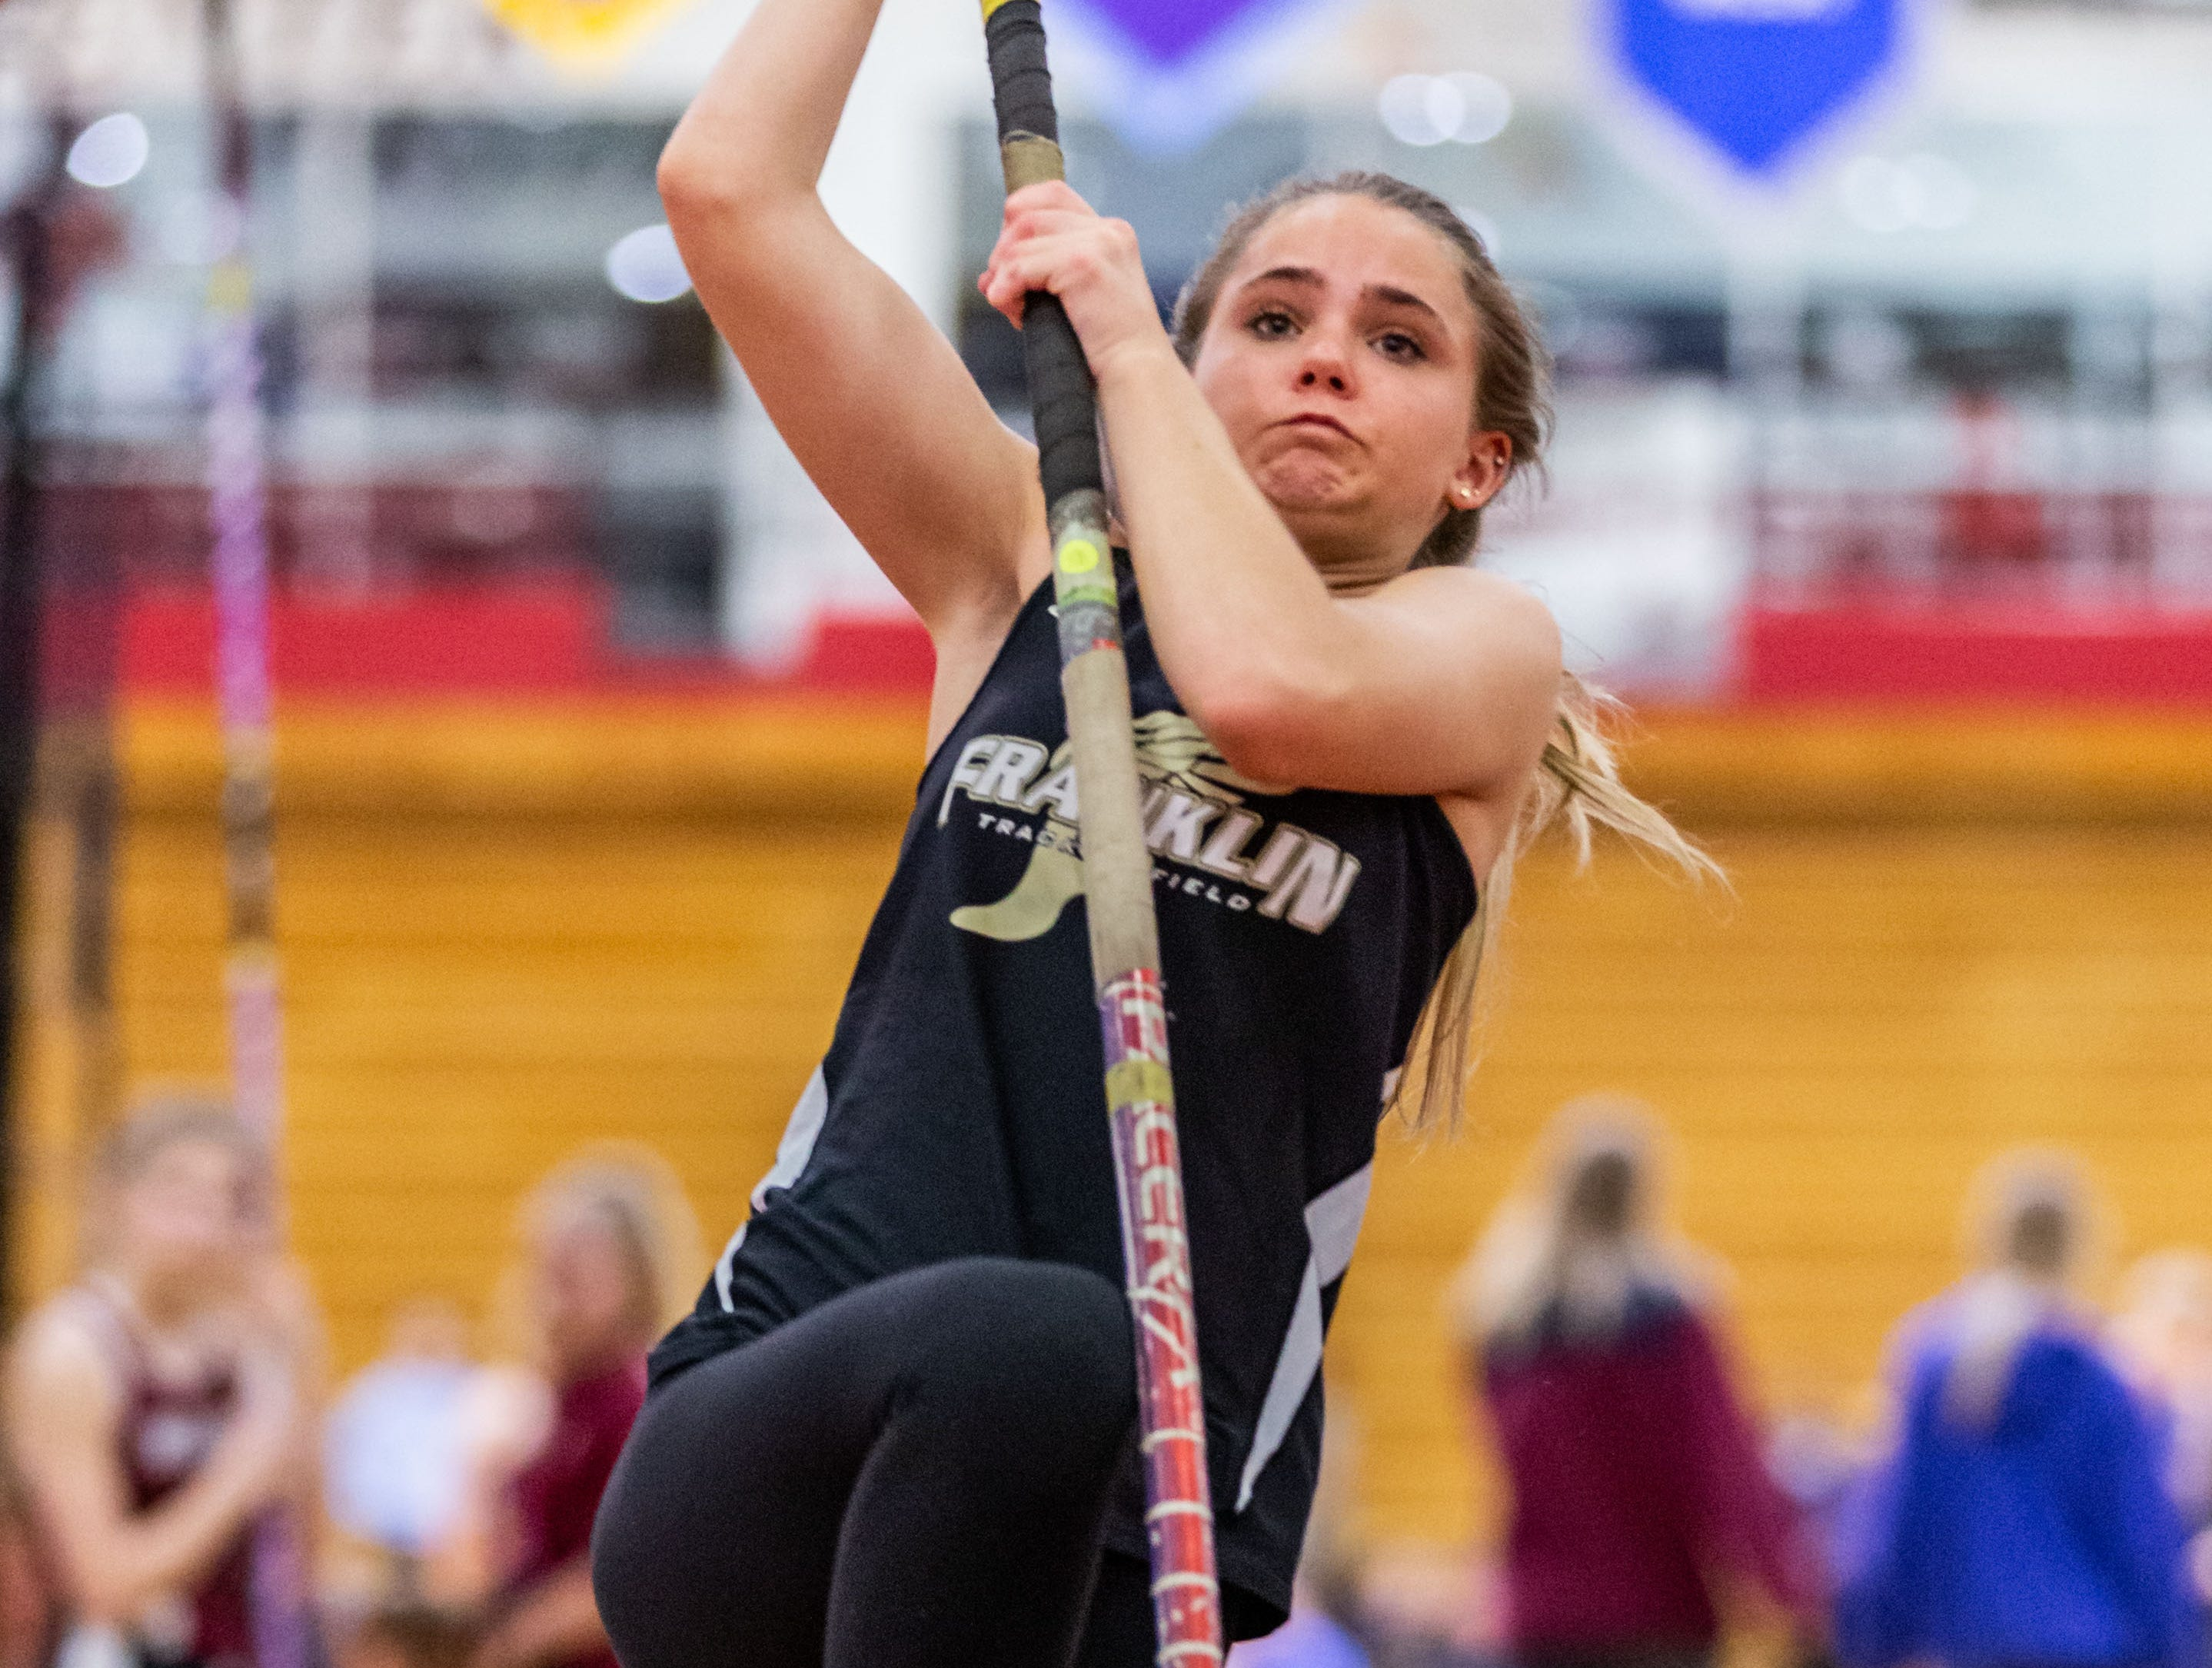 Franklin's Alexi Thorpe competes in the pole vault at the Peter Rempe Cardinal Relays hosted by Waukesha South on Thursday, March 21, 2019.